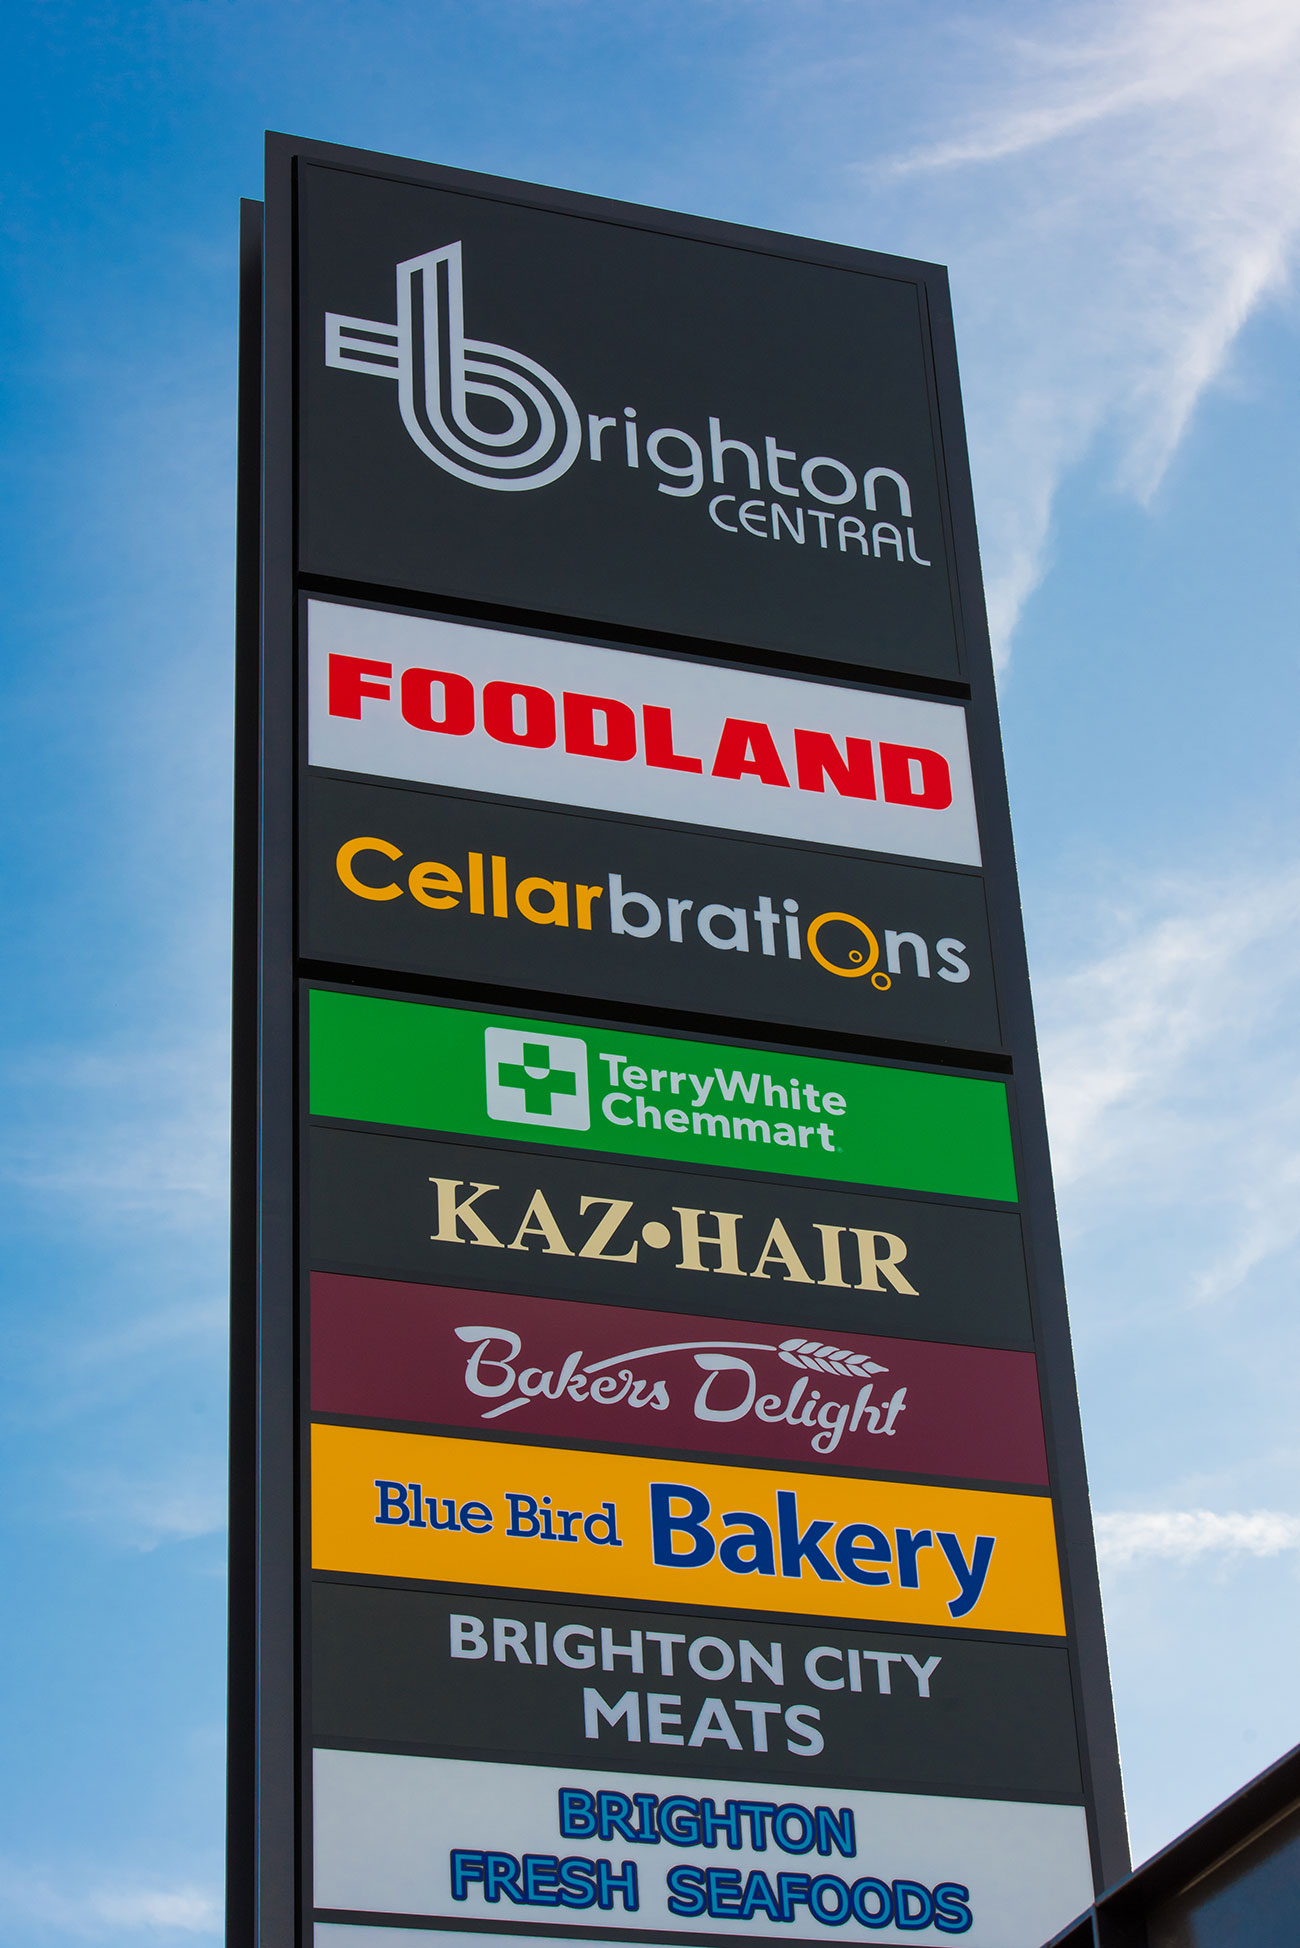 Chappell Builders – Brighton Foodland Shopping Centre Extension